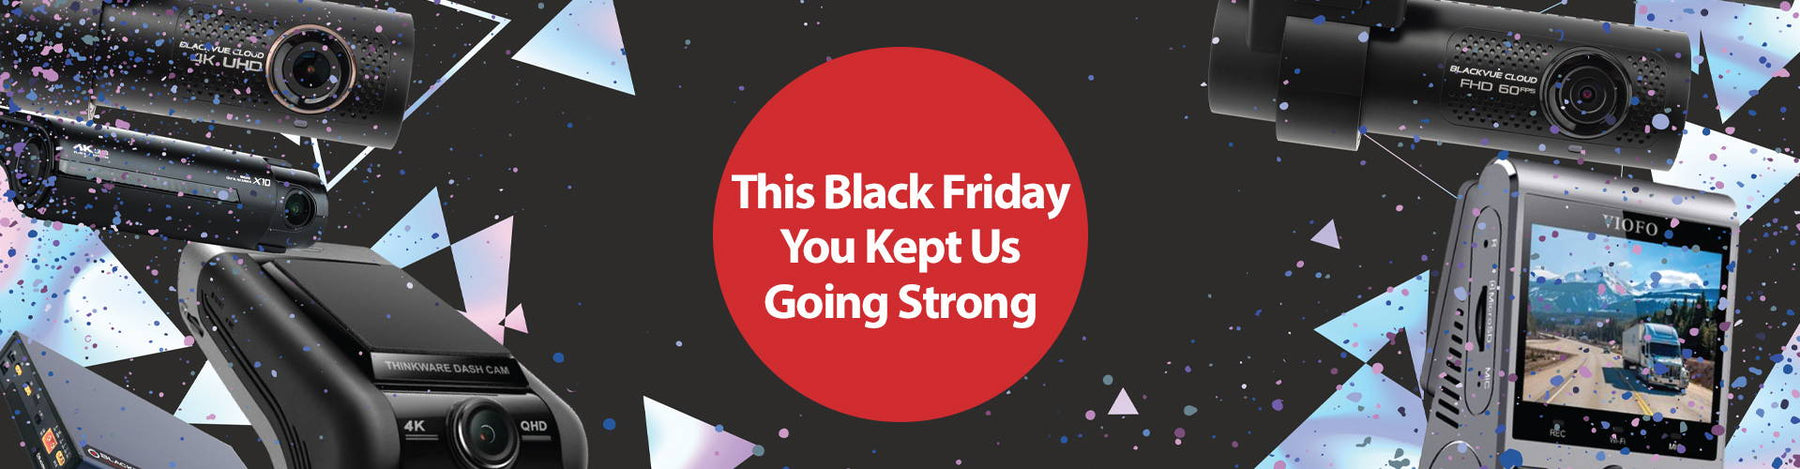 You Kept Us Going Strong This Black Friday